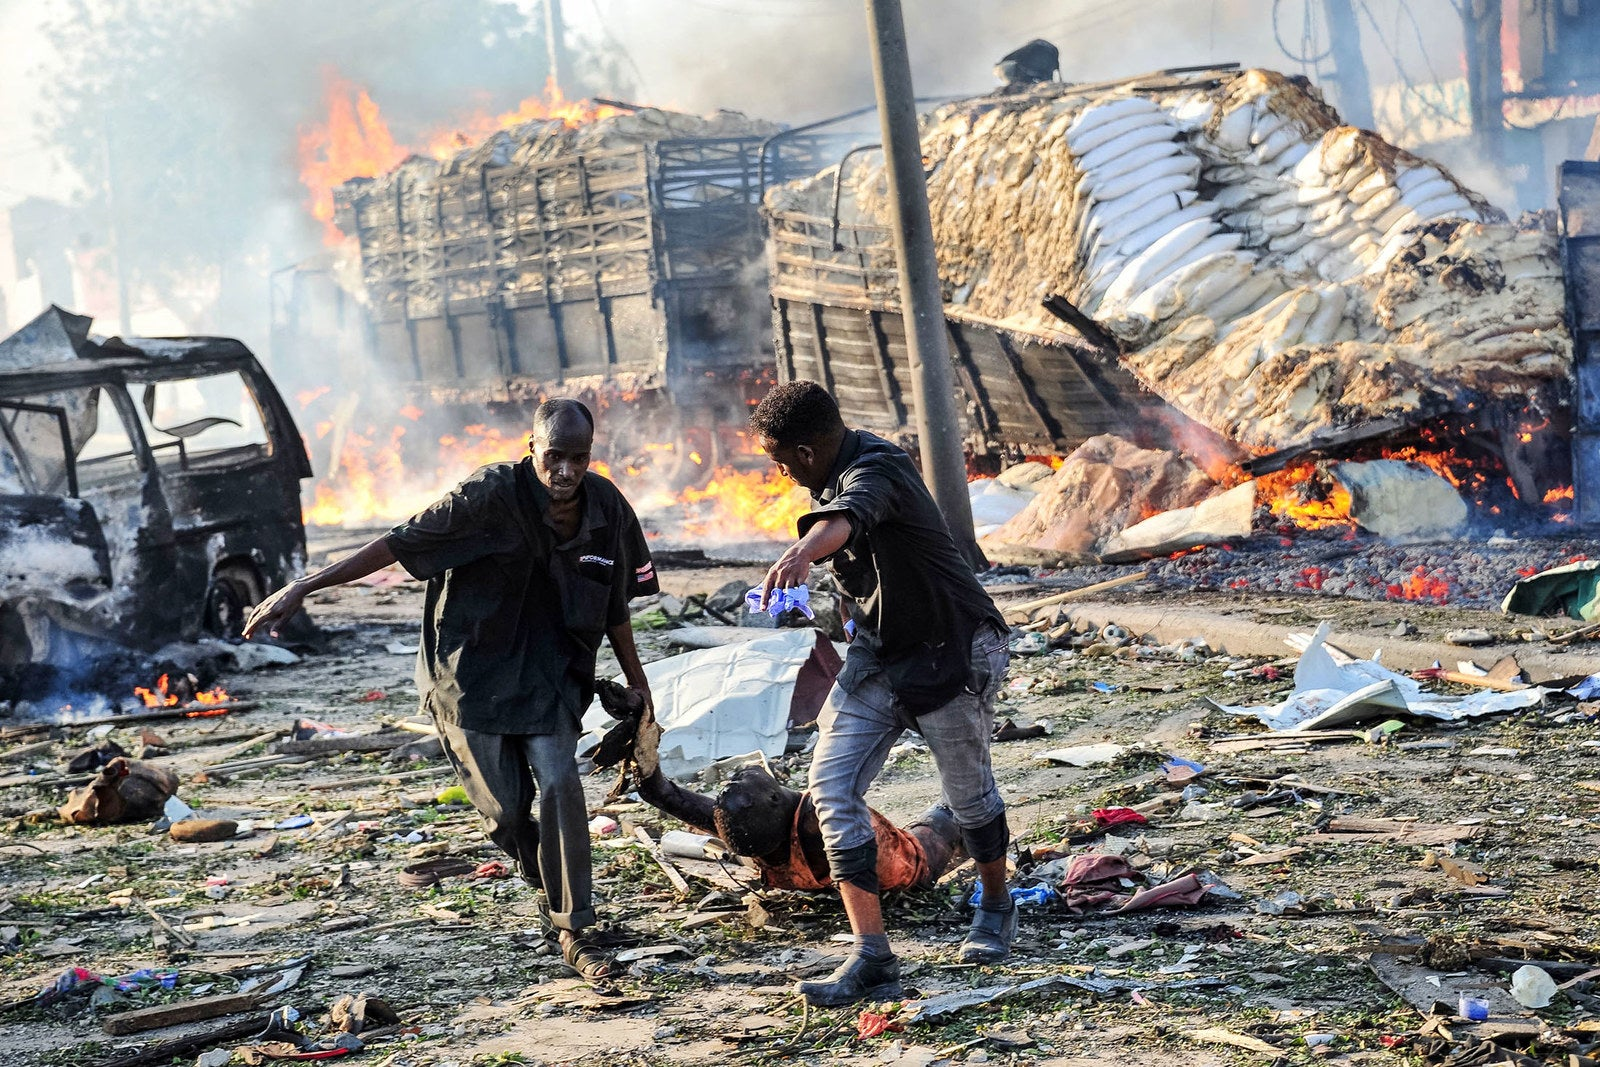 Two men carry the body of a victim following the explosion of a truck bomb in the center of Mogadishu, Somalia, on Oct. 14.